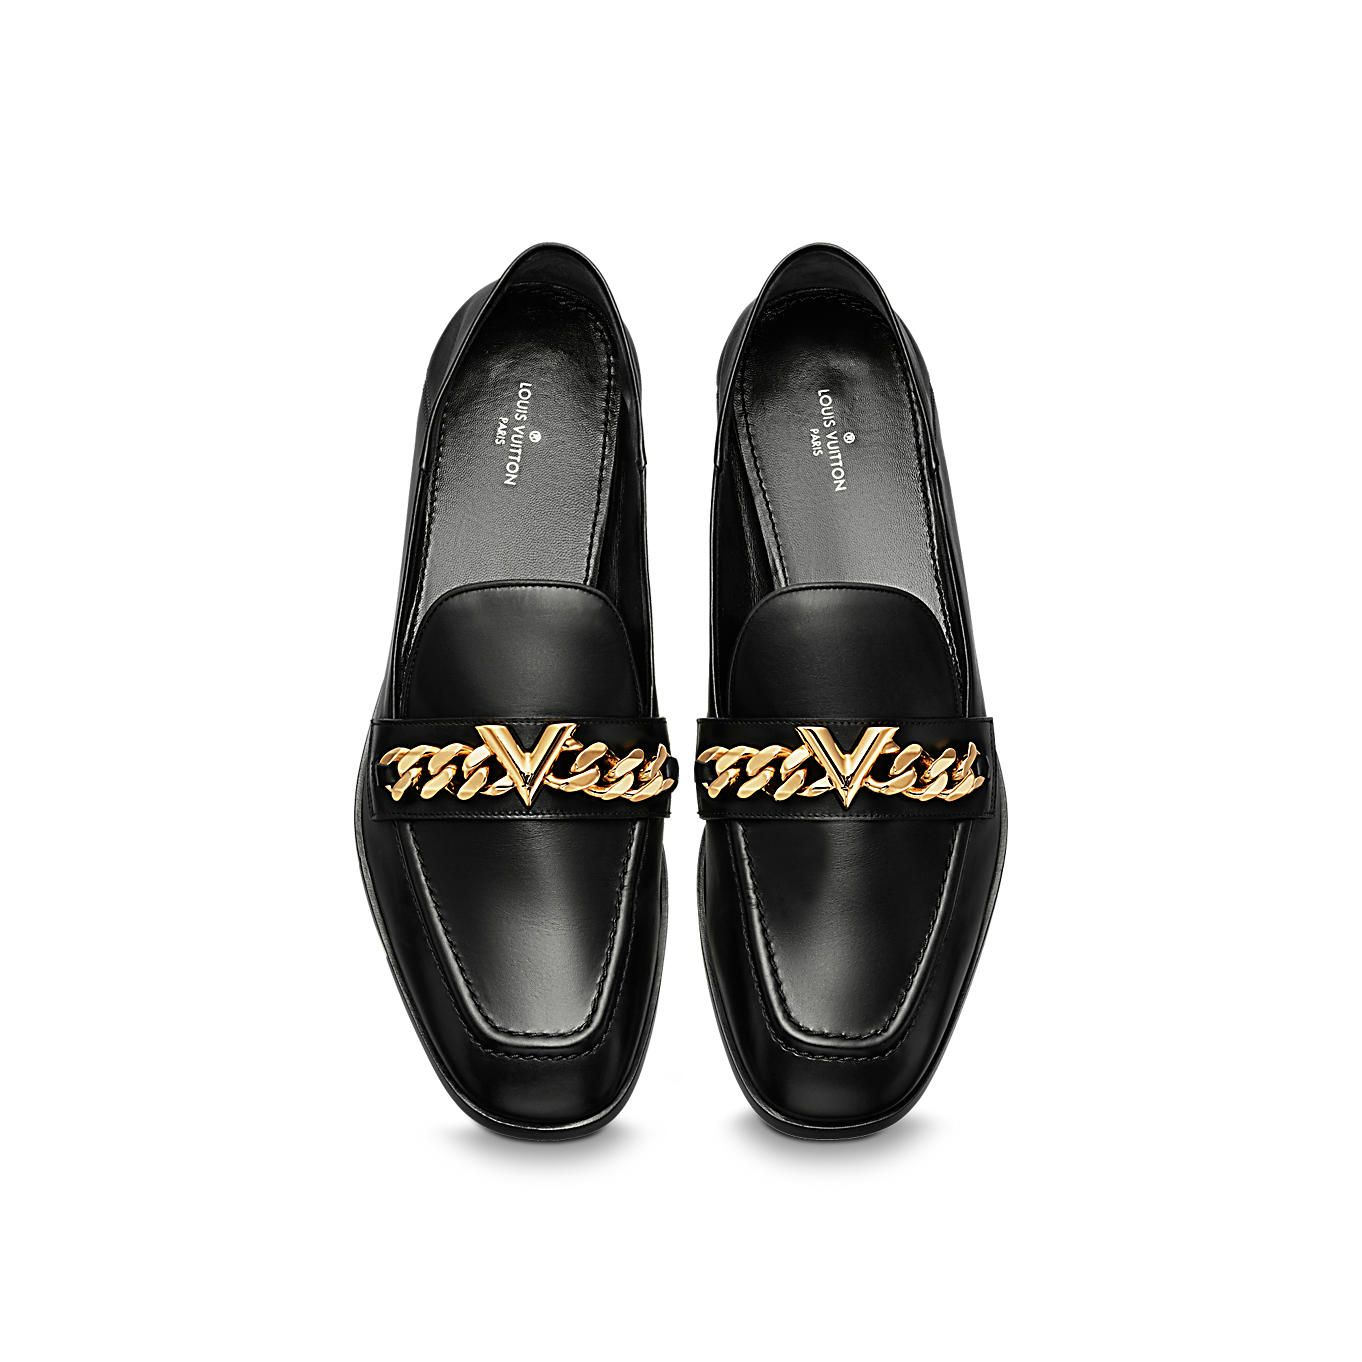 Prime Time Loafer Women Shoes